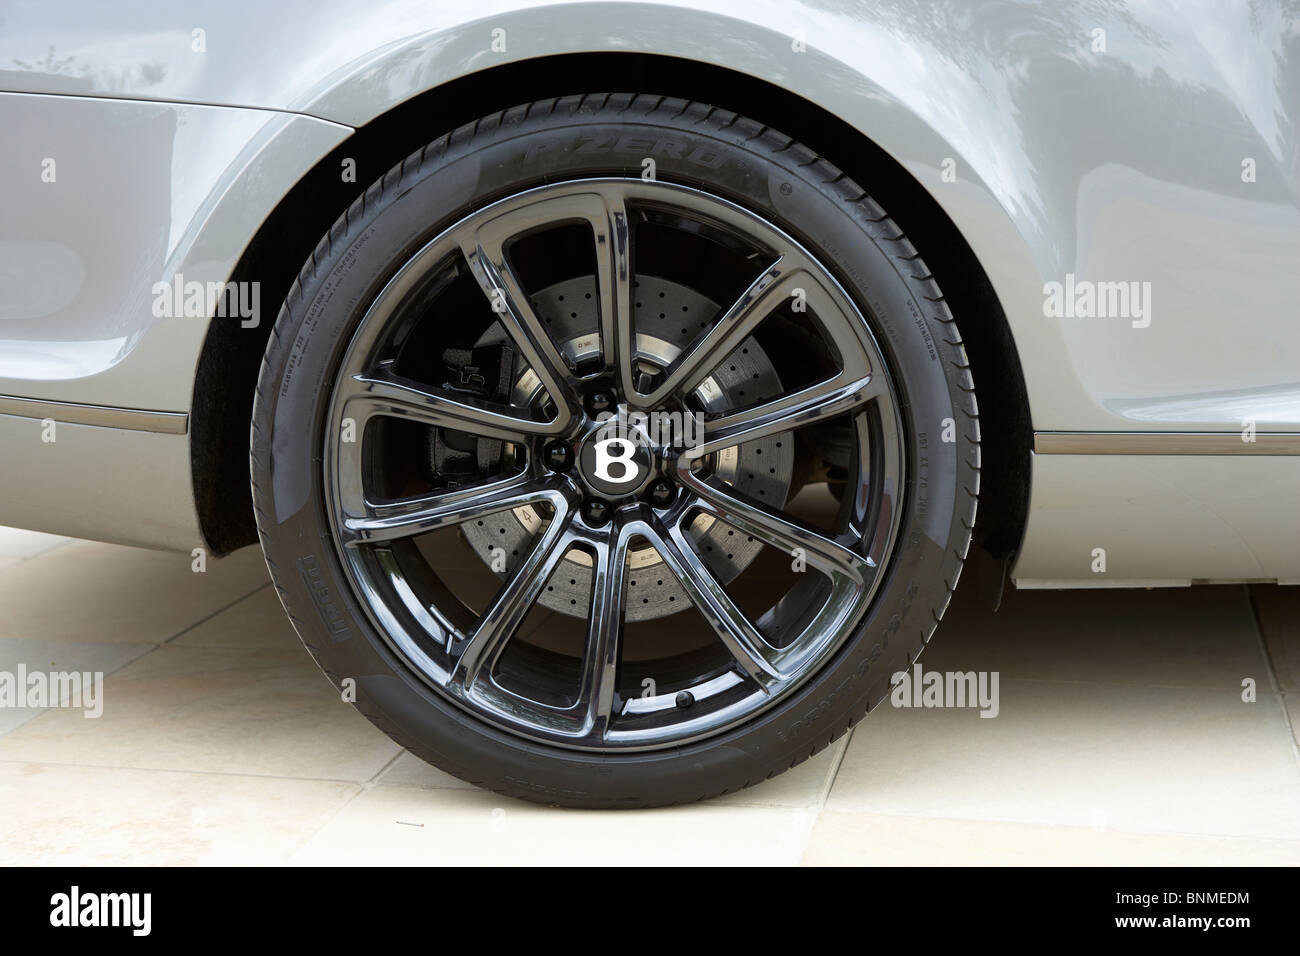 BENTLEY TURBO SPORT ALLOY WHEEL ABZEICHEN LOGO Stockbild